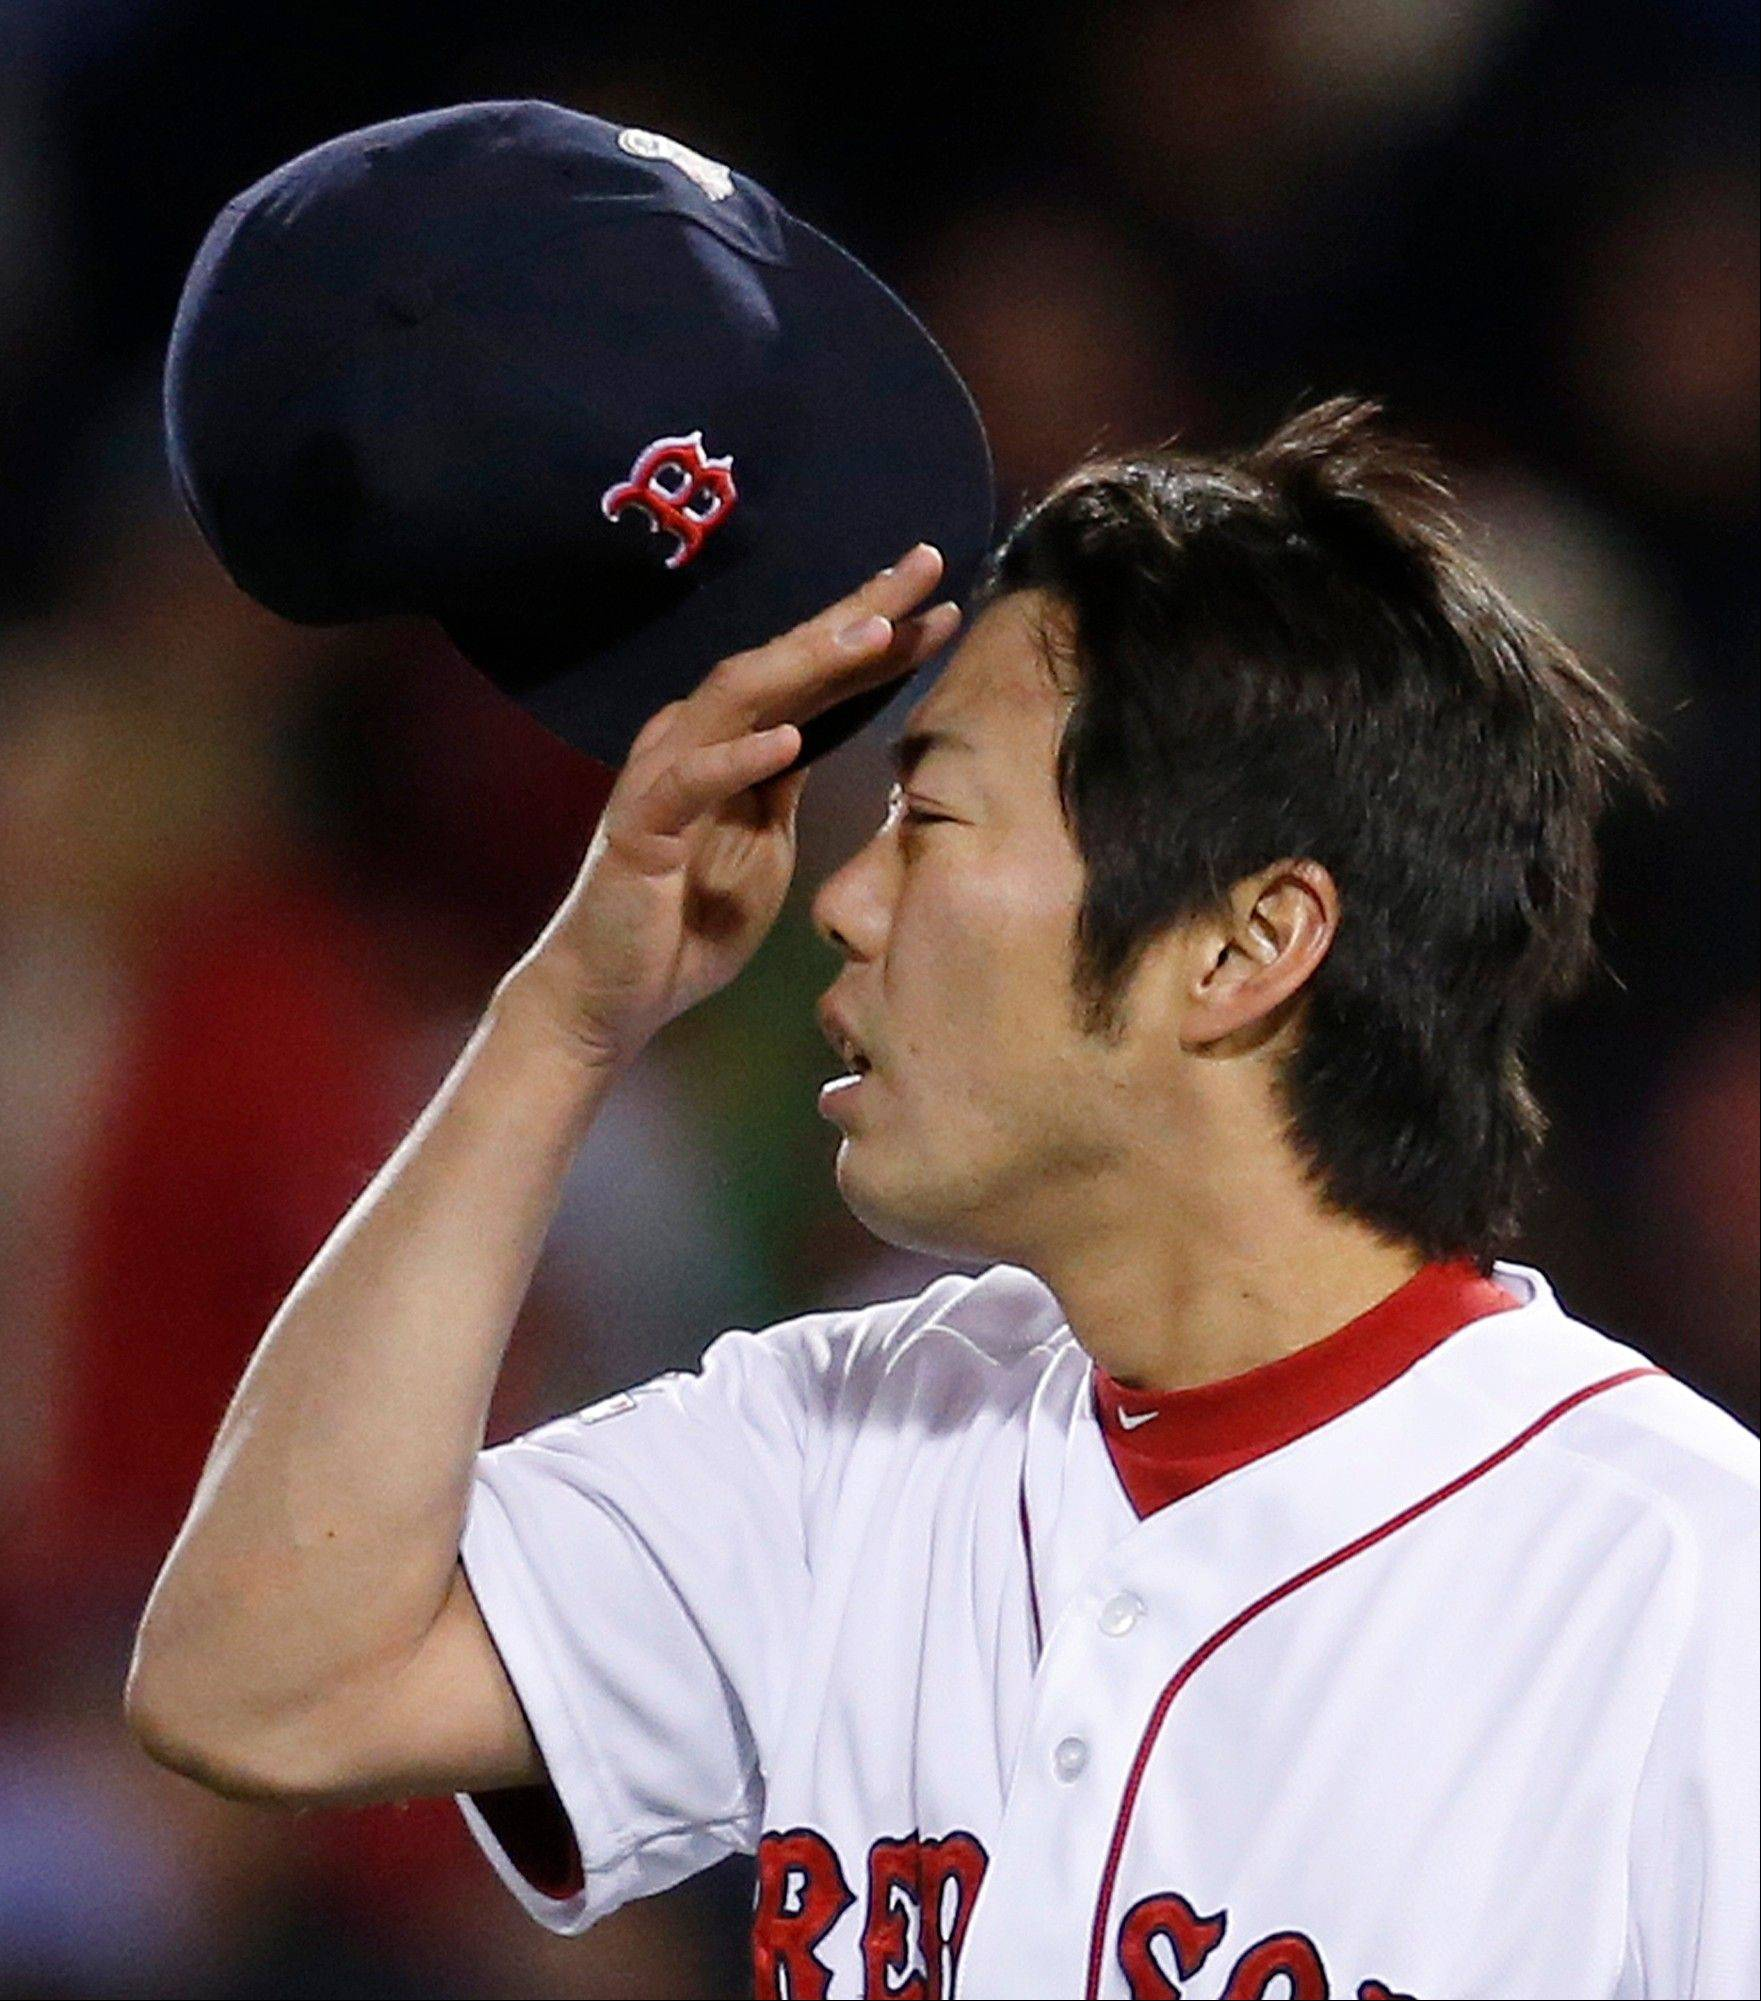 Boston Red Sox relief pitcher Koji Uehara rubs his forehead during the ninth inning of Game 2.